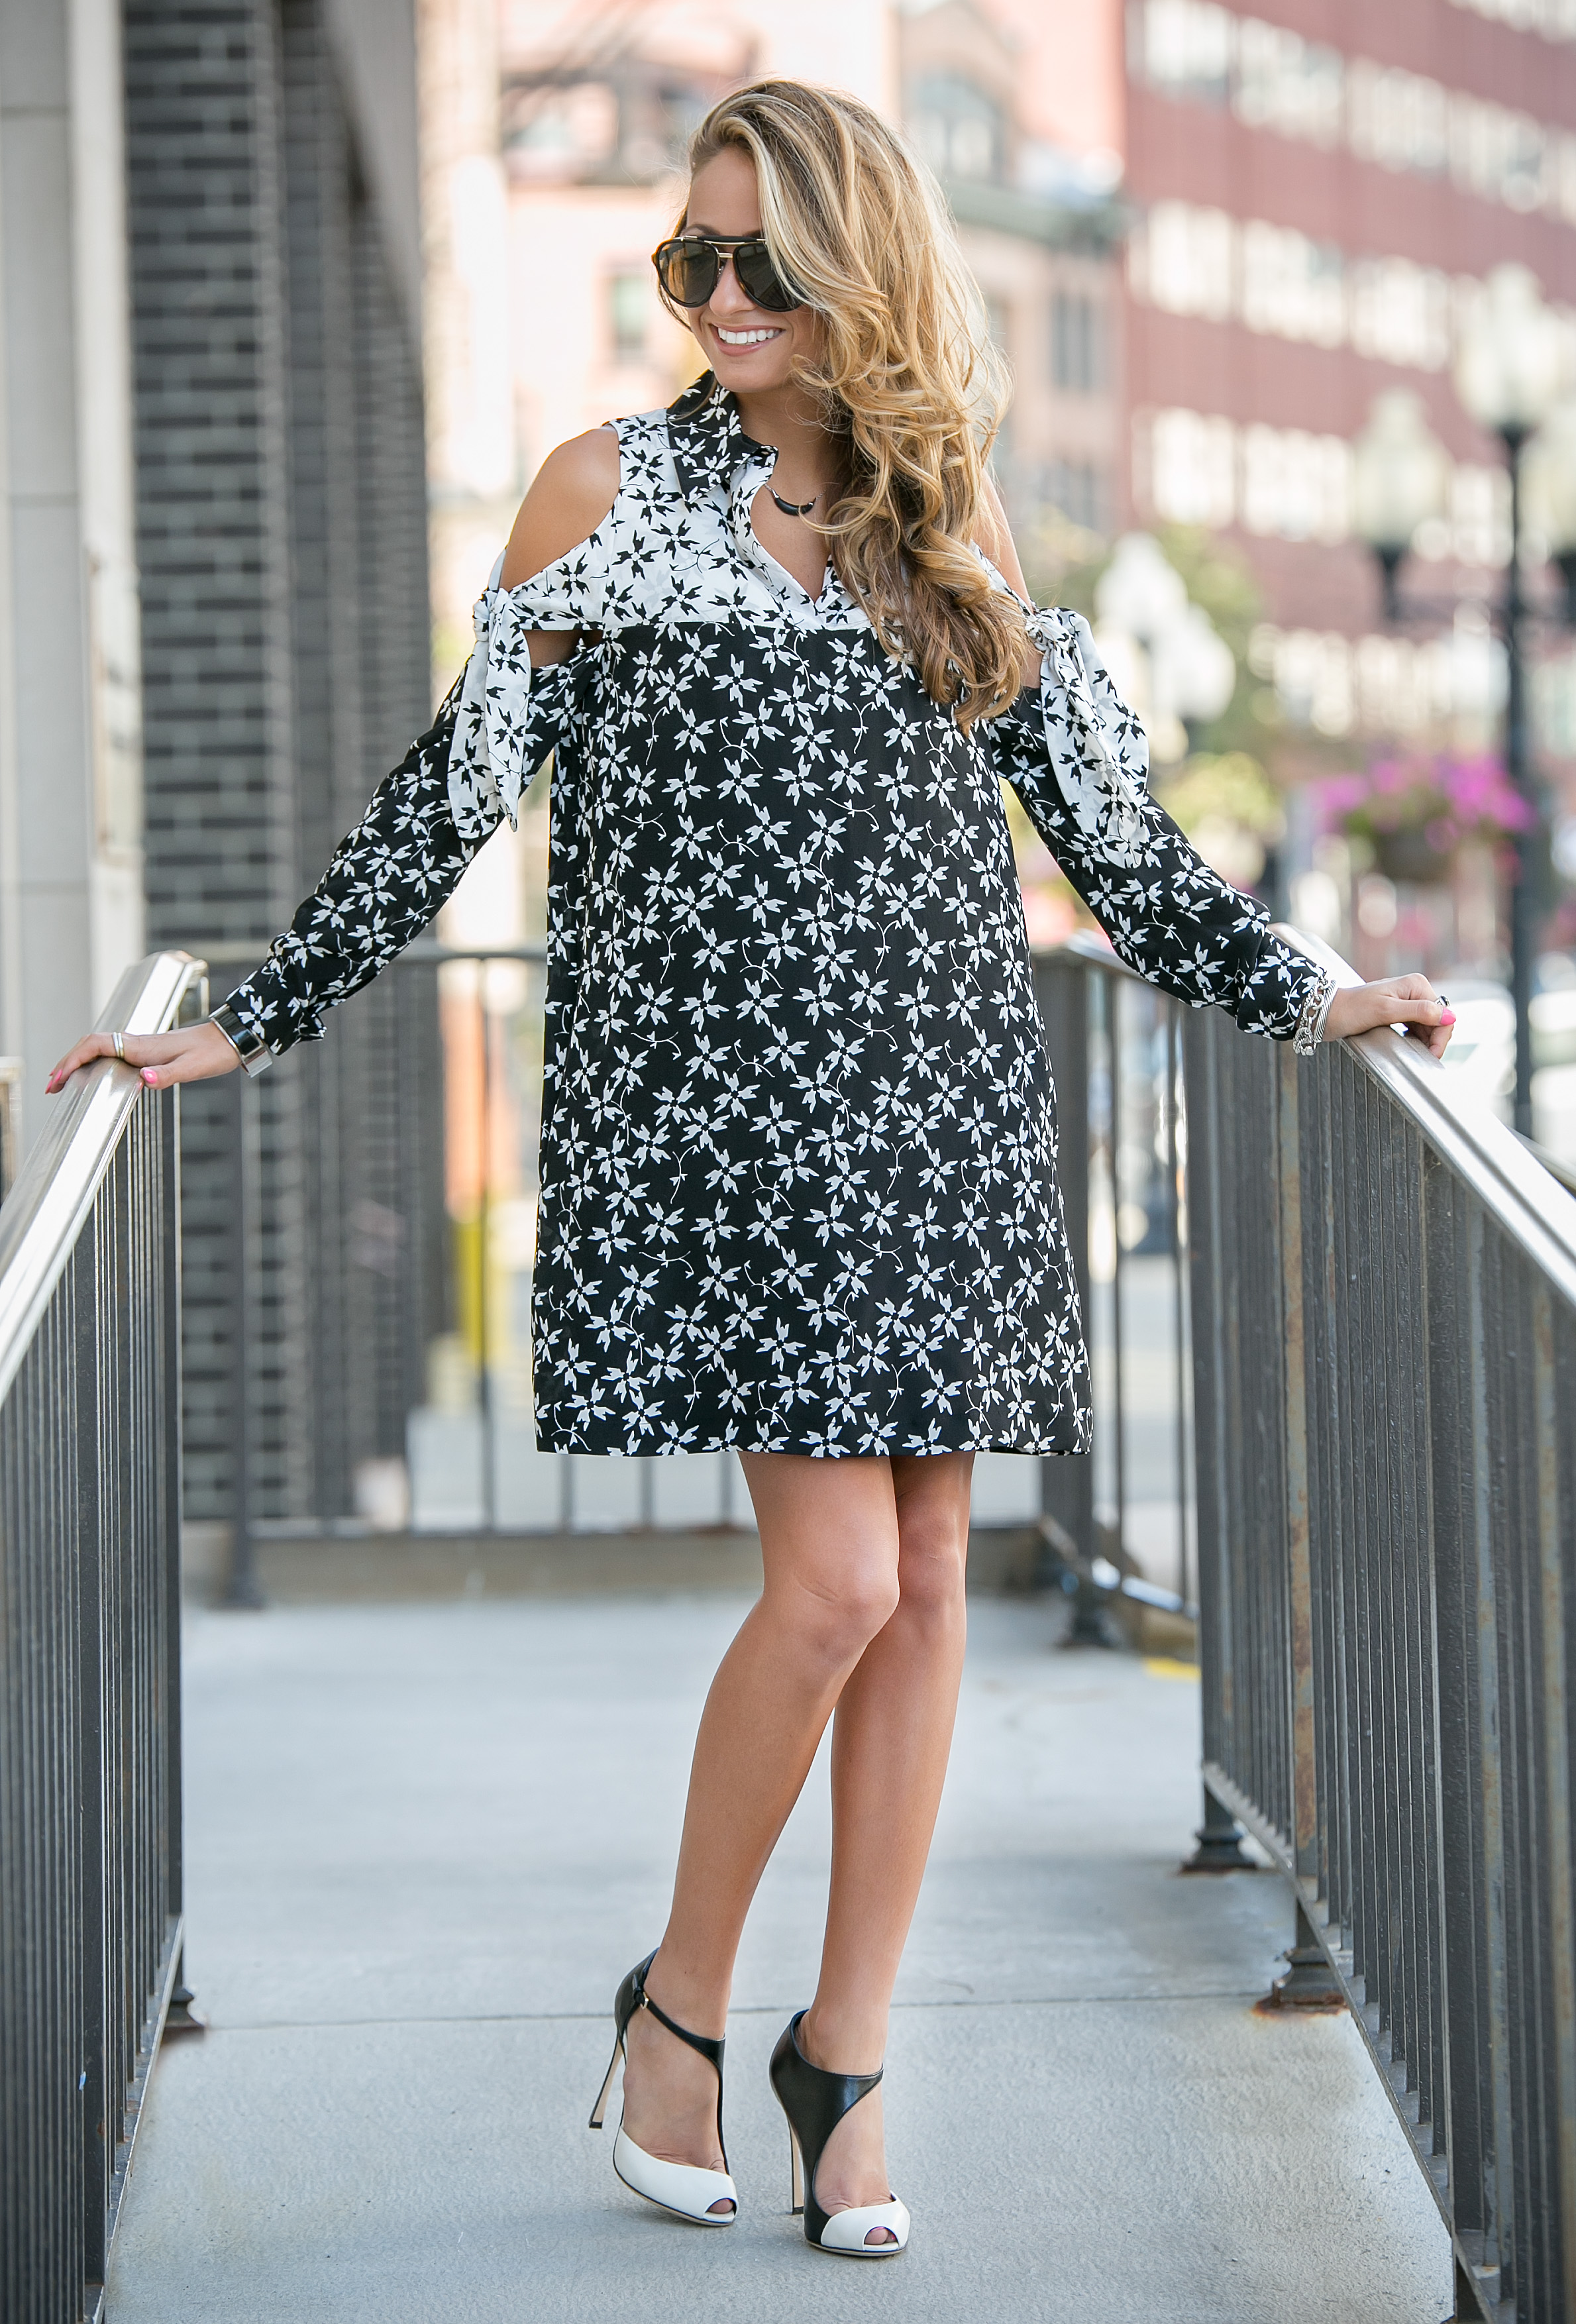 streetstyle blogger wearing a printed silk Tanya Taylor black and white dress with black and white pumps by Sergio Rossi